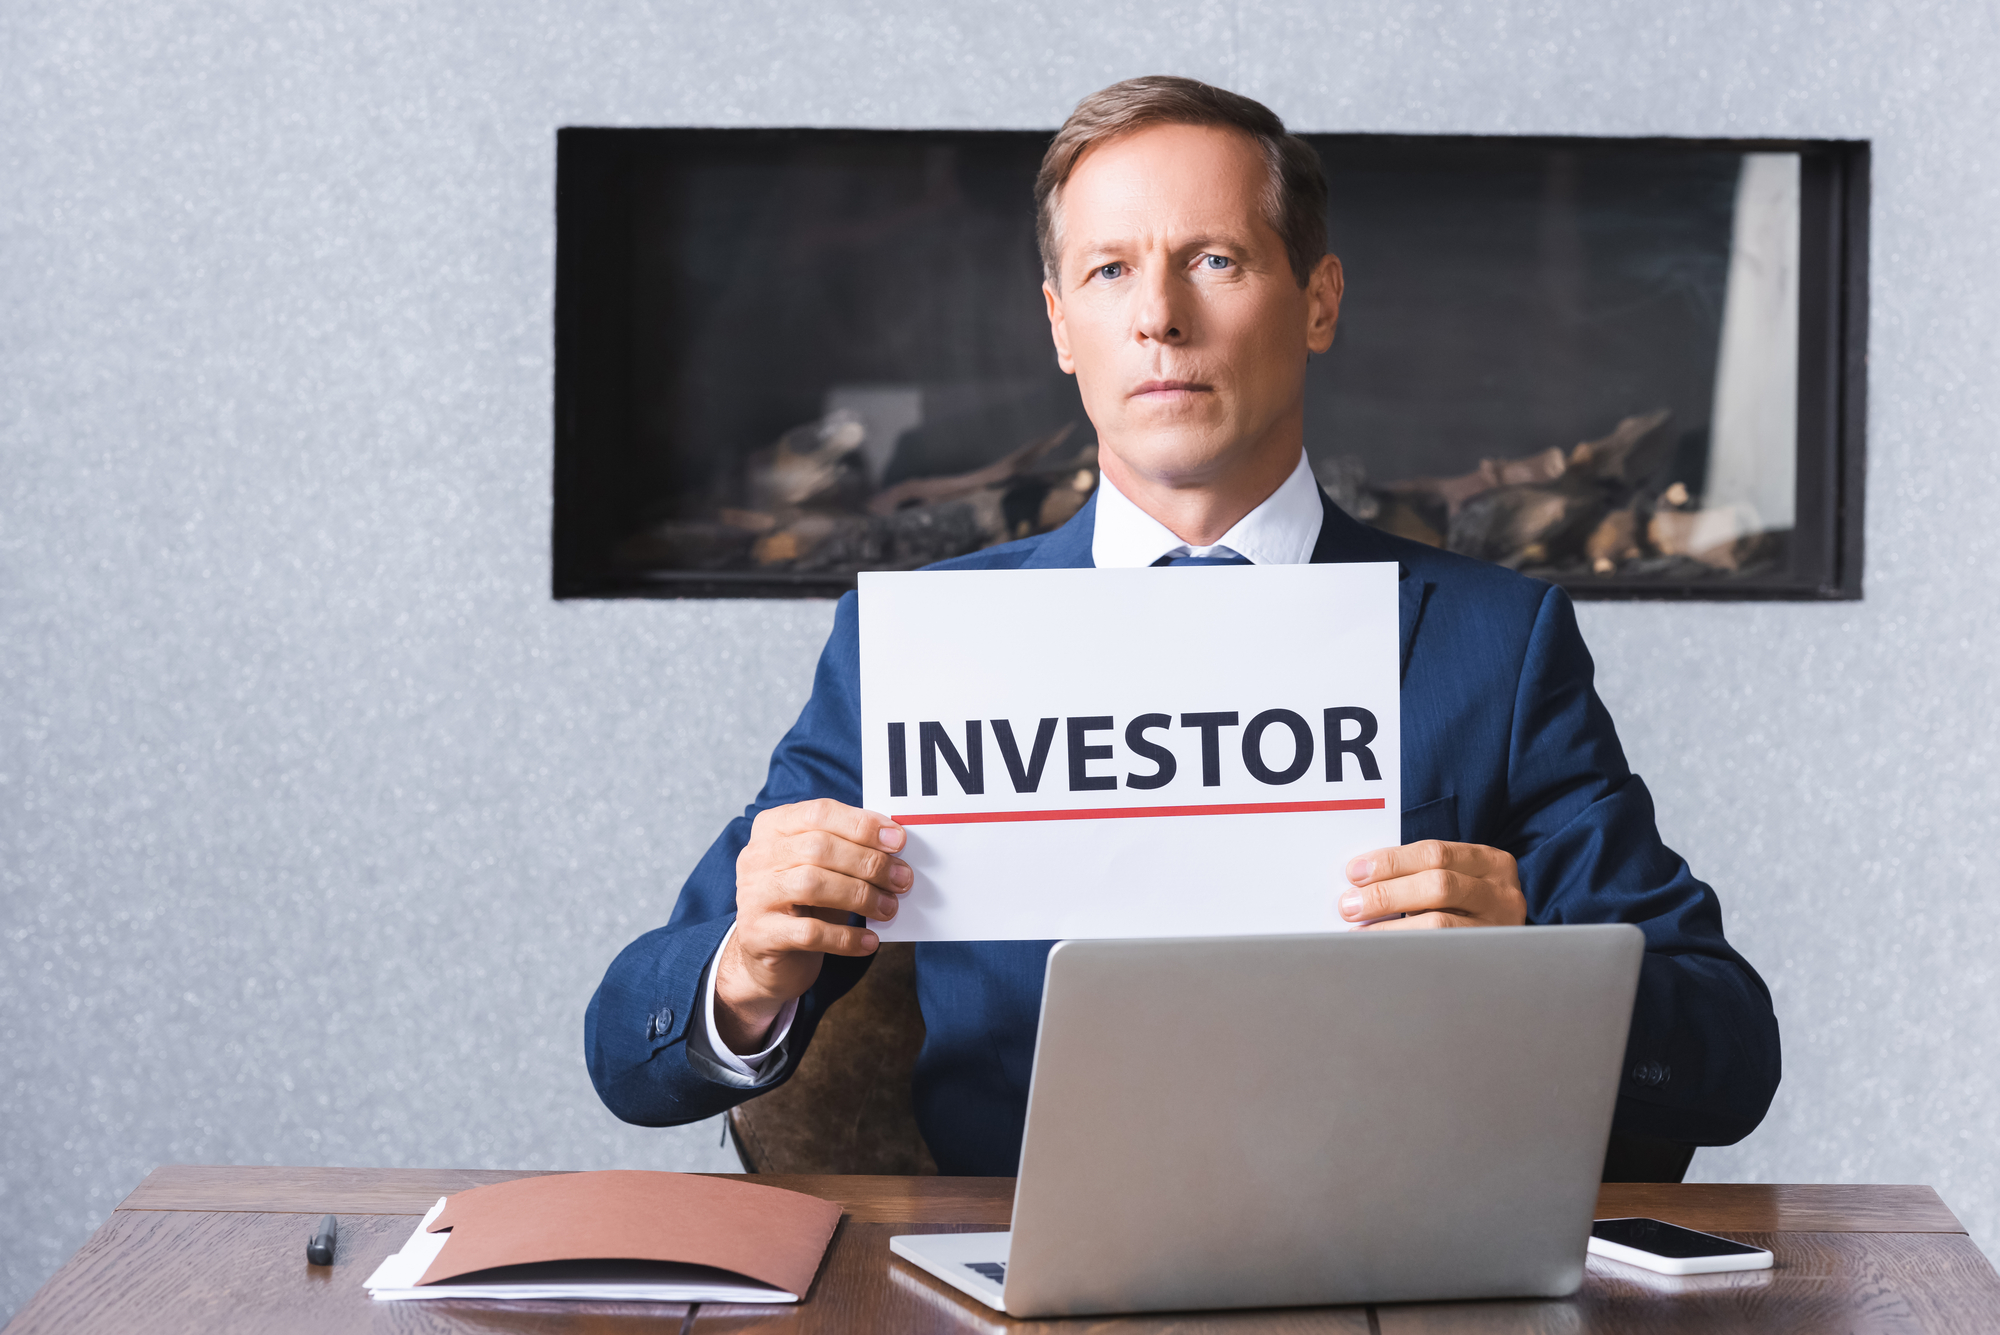 get the right funding from investors